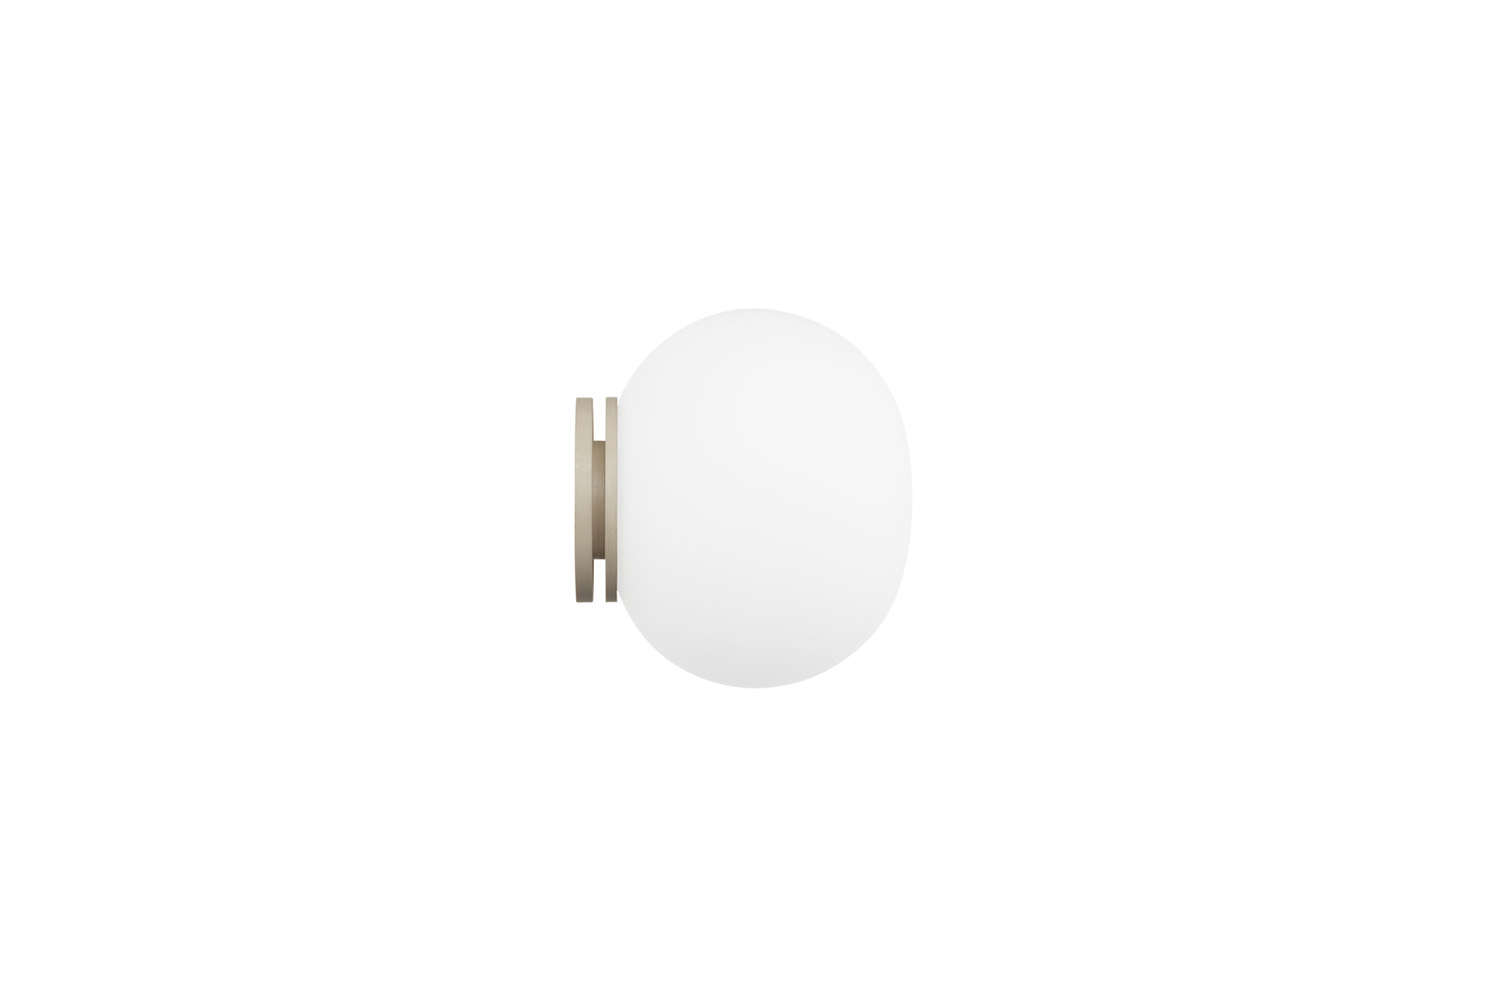 Designed by Jasper Morrison for FLOS, the Mini Glo Ball White Light with glass diffuser is $5 at Hive.